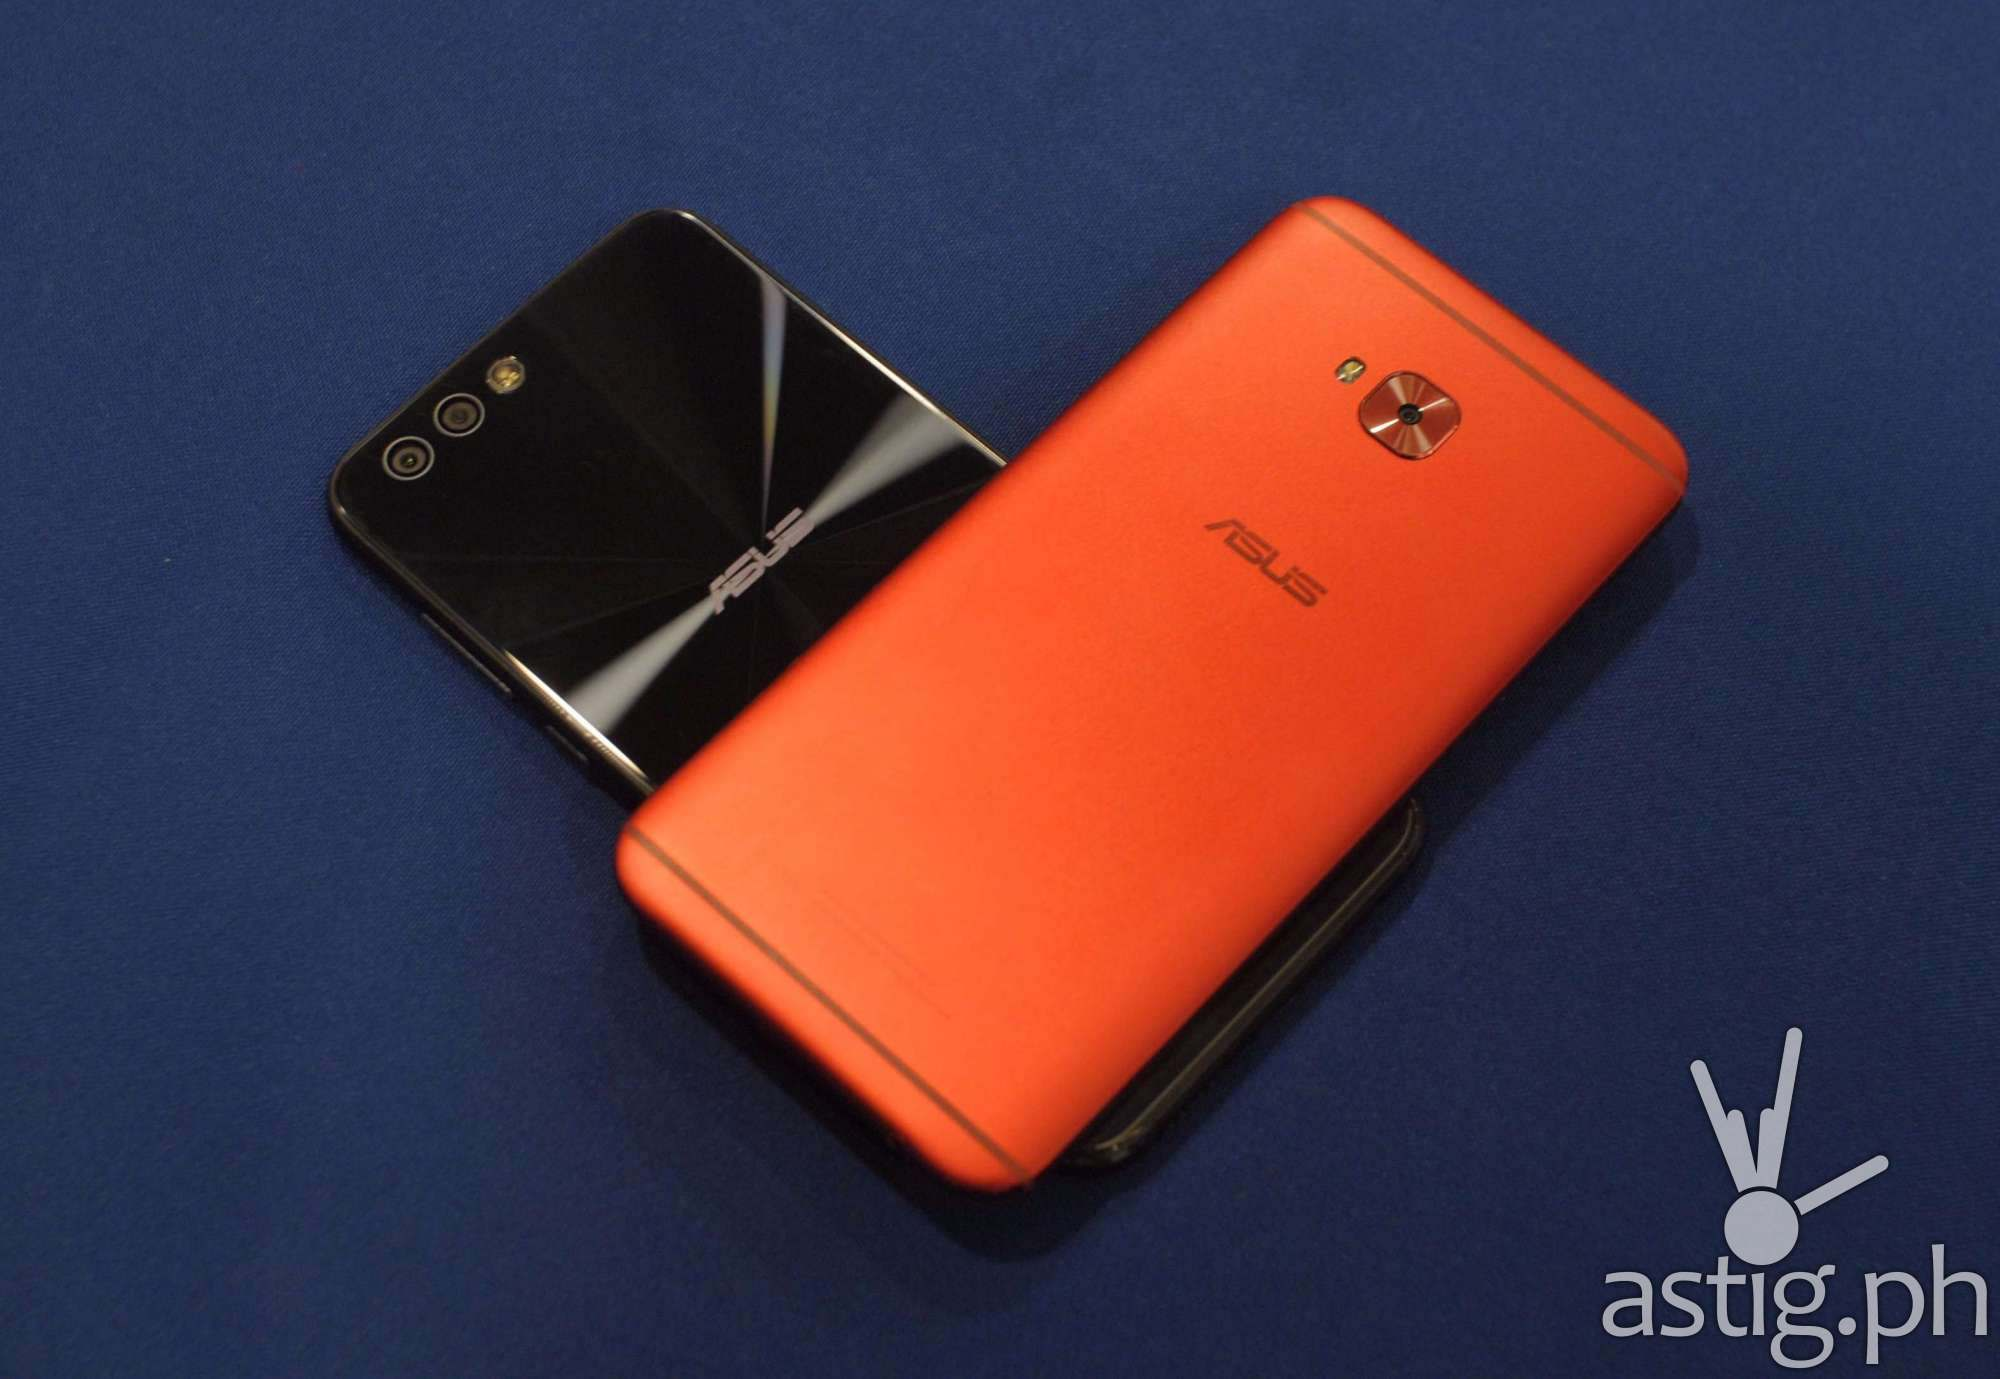 ASUS Zenfone 4 and the ASUS Zenfone 4 Selfie